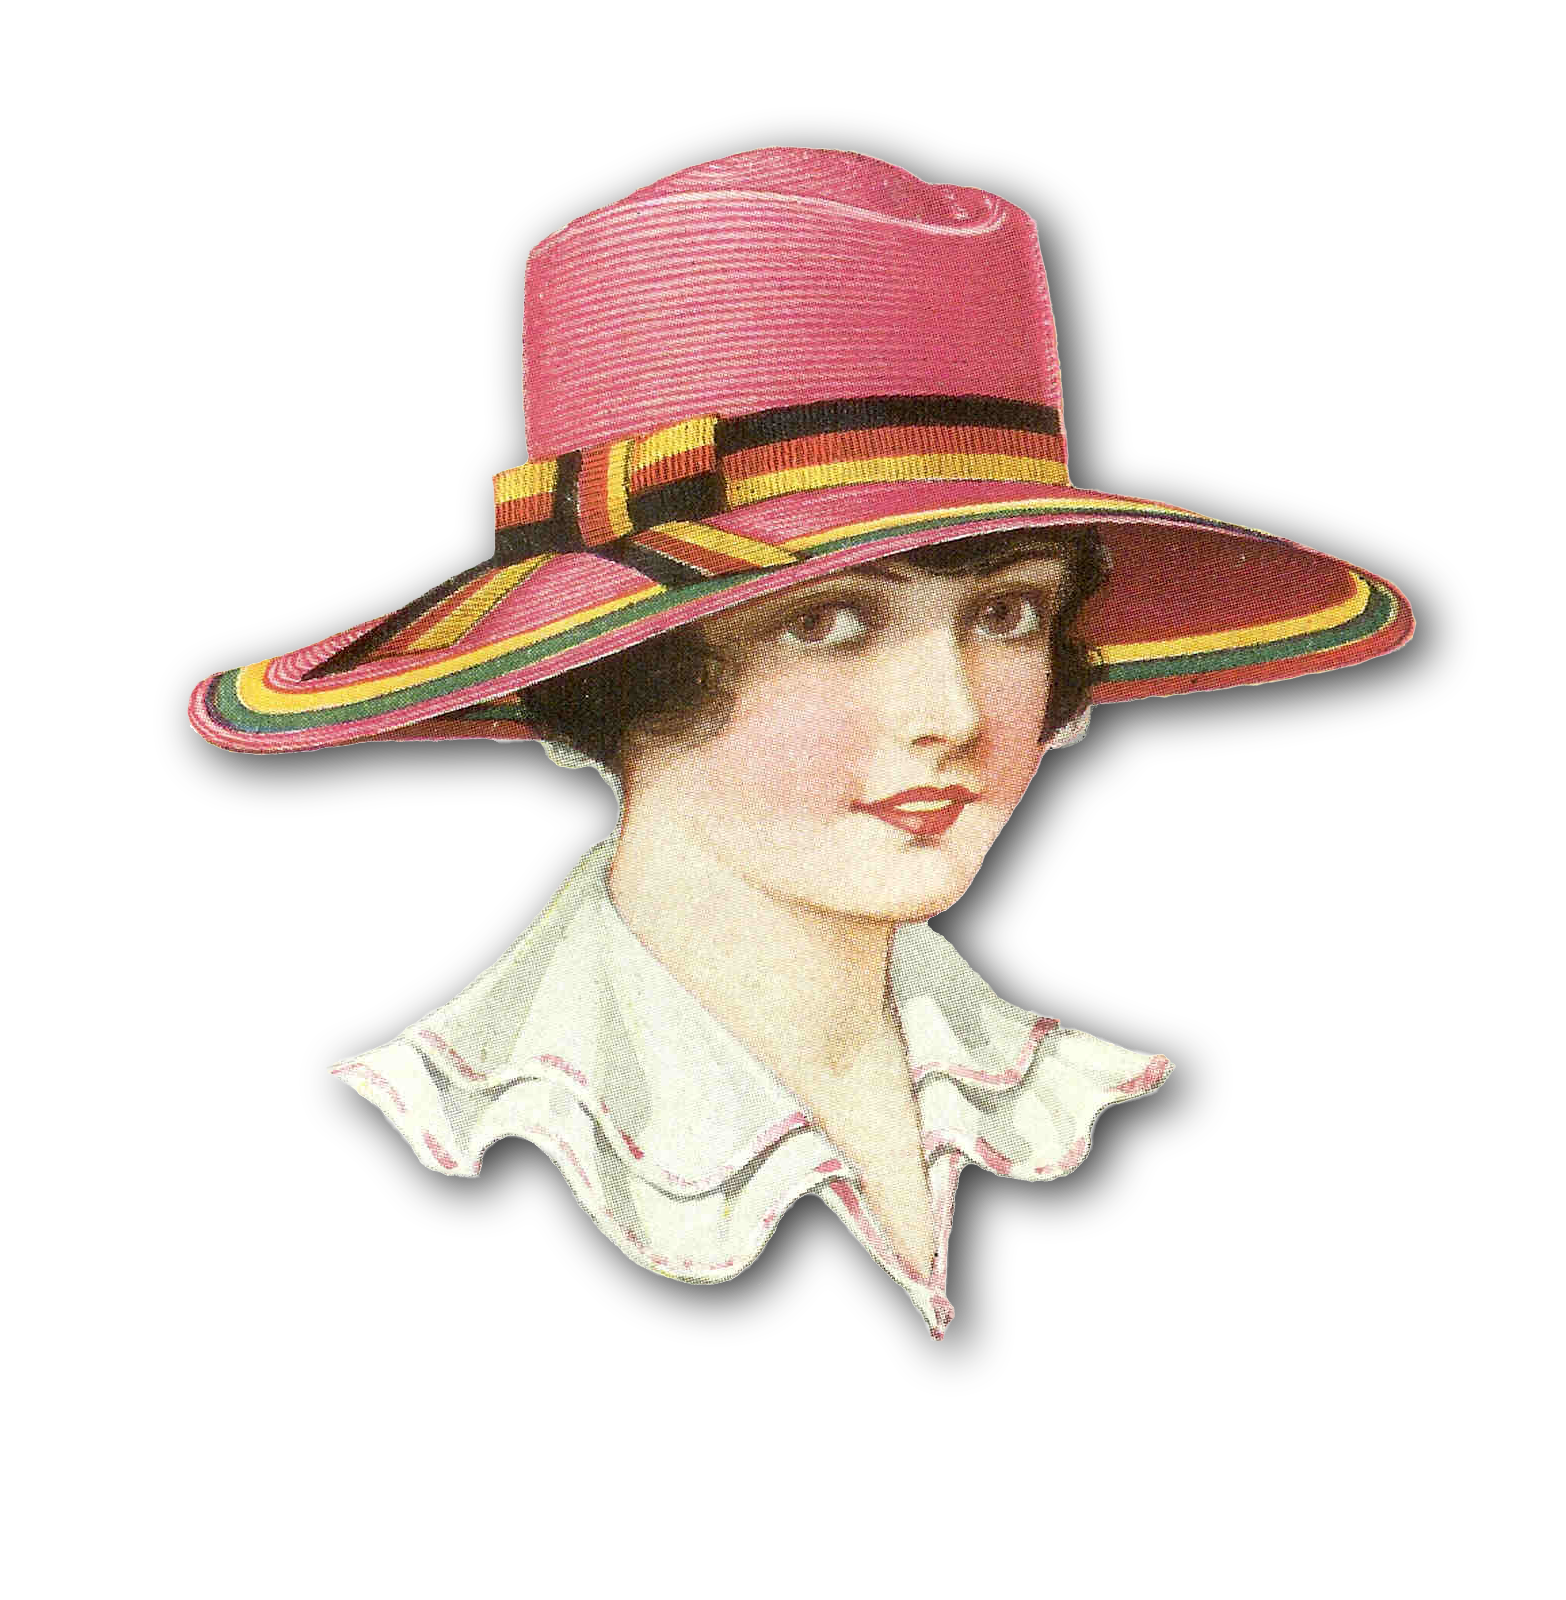 Sun hat clipart black and white png download Shad Clipart Group (50+) png download